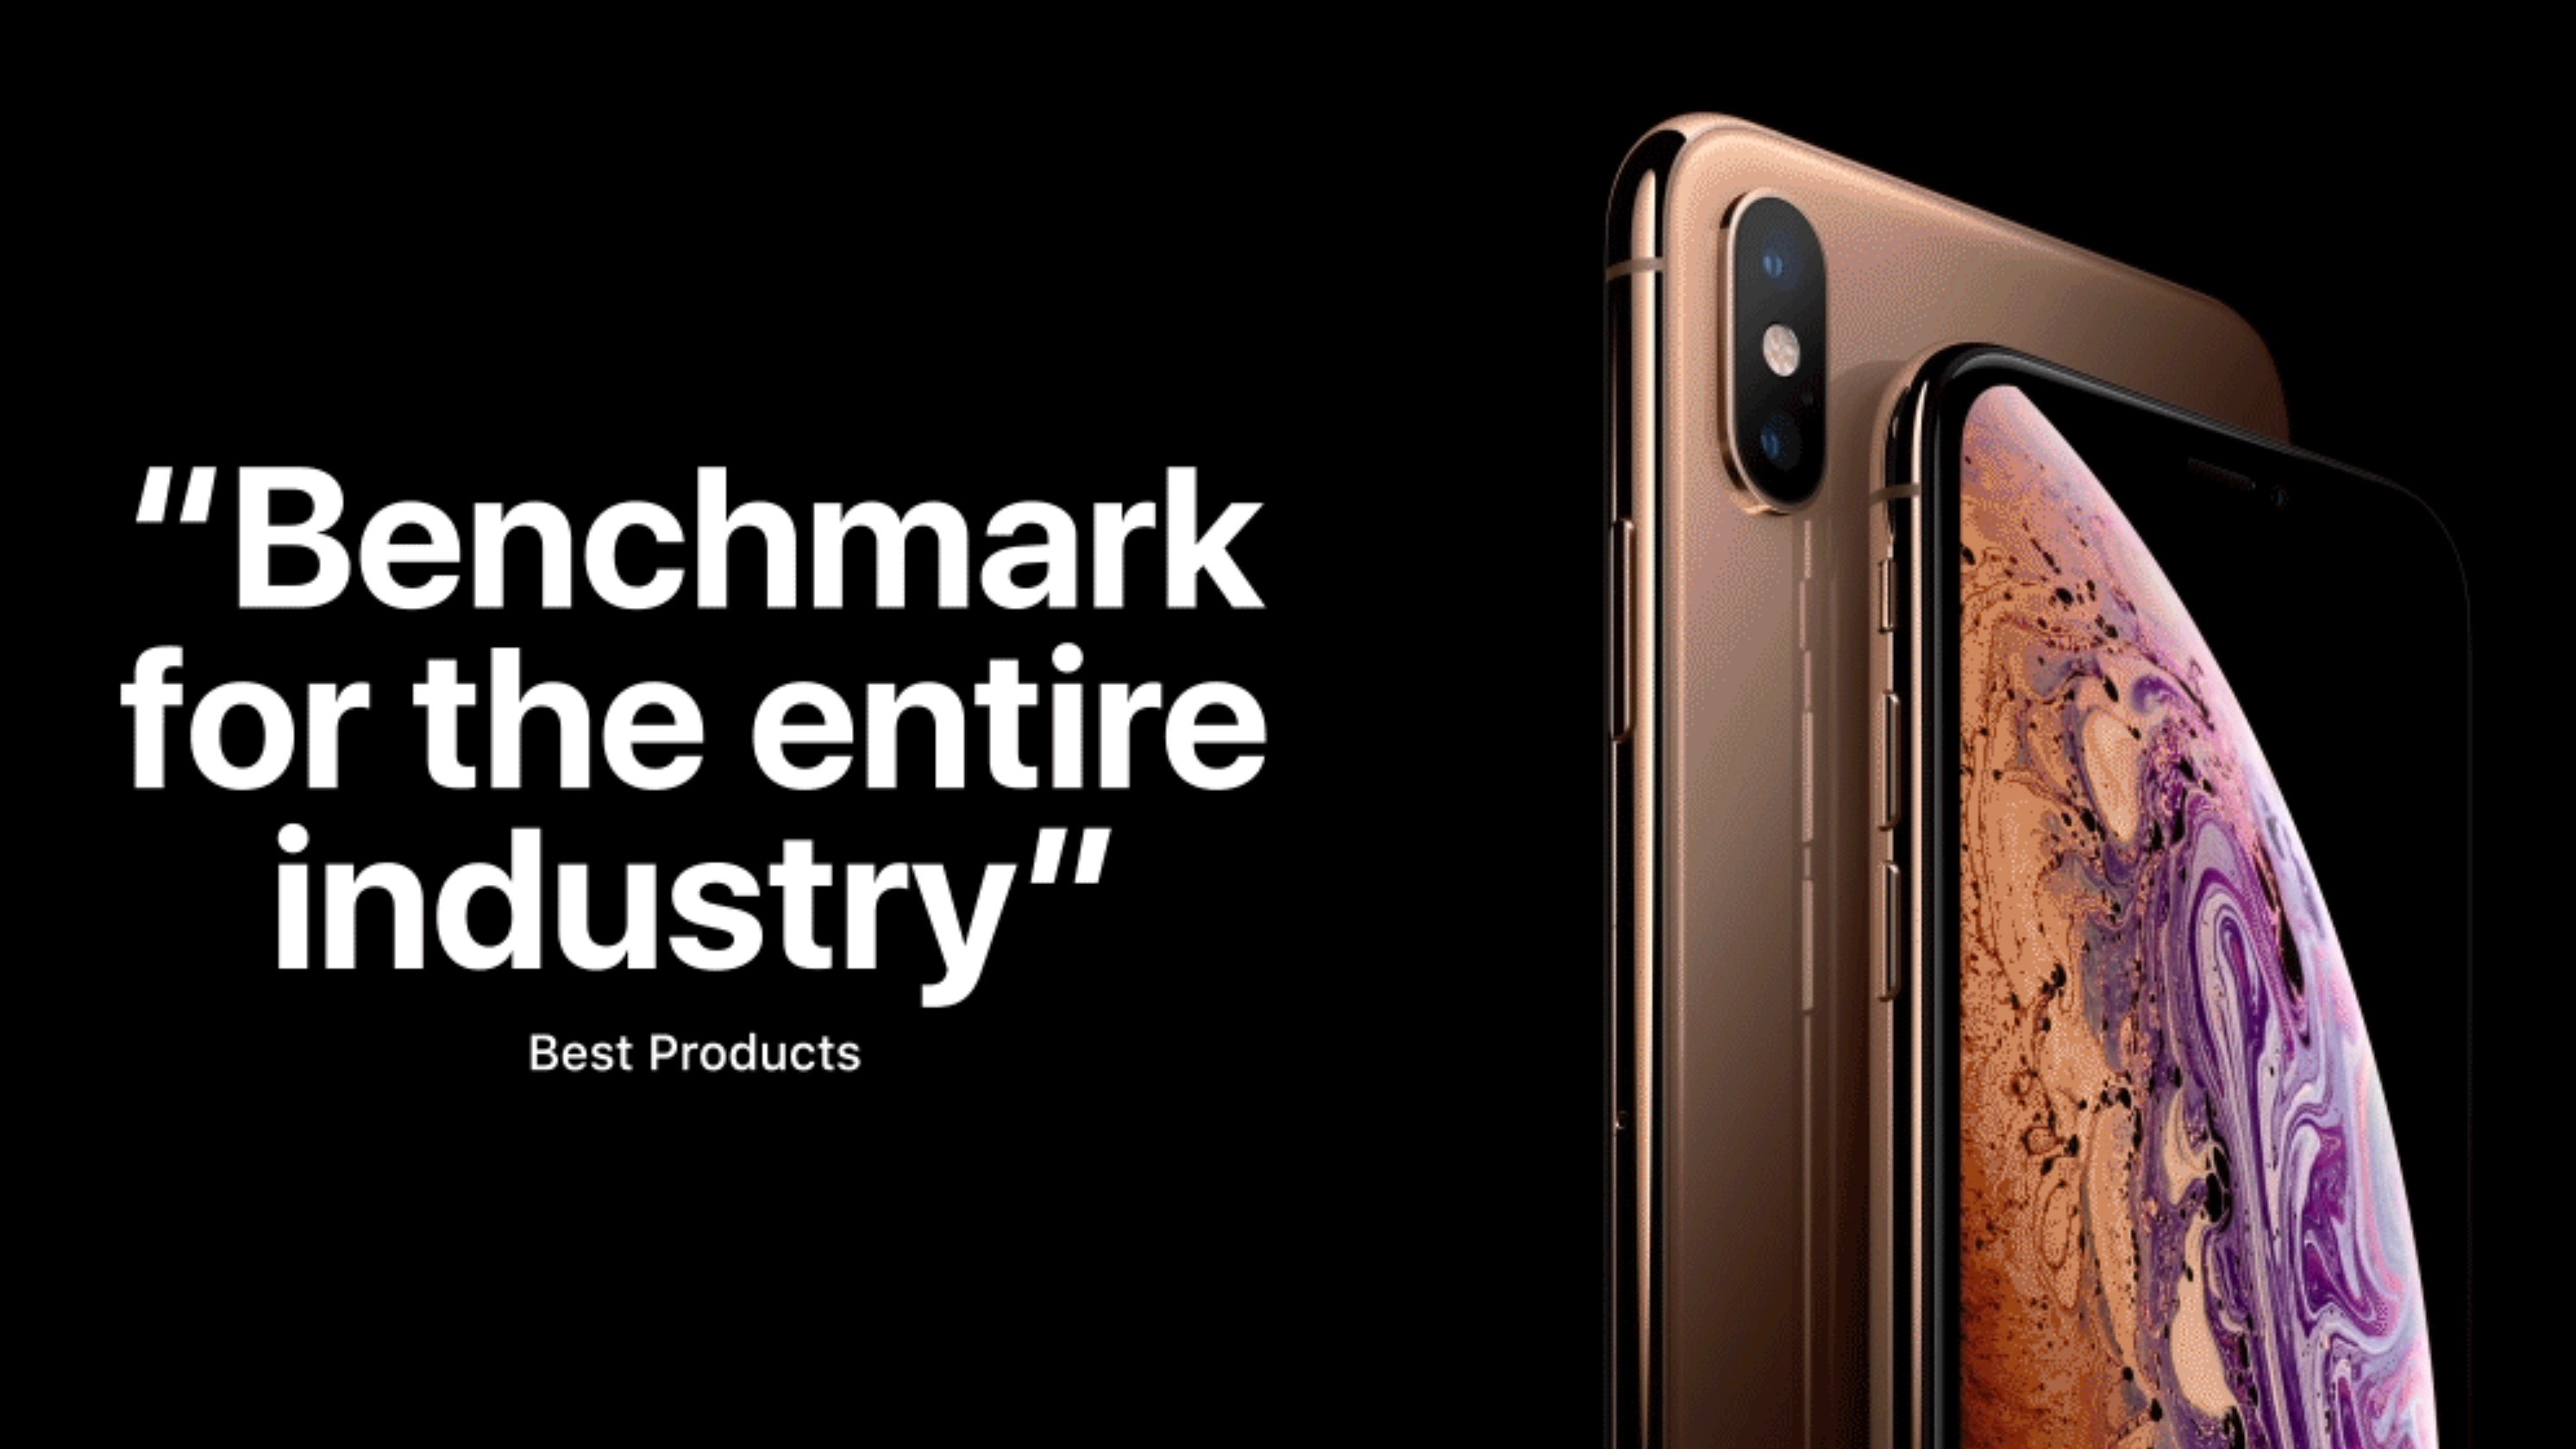 apple shares its own iphone xs review roundup focusing entirely on the positives